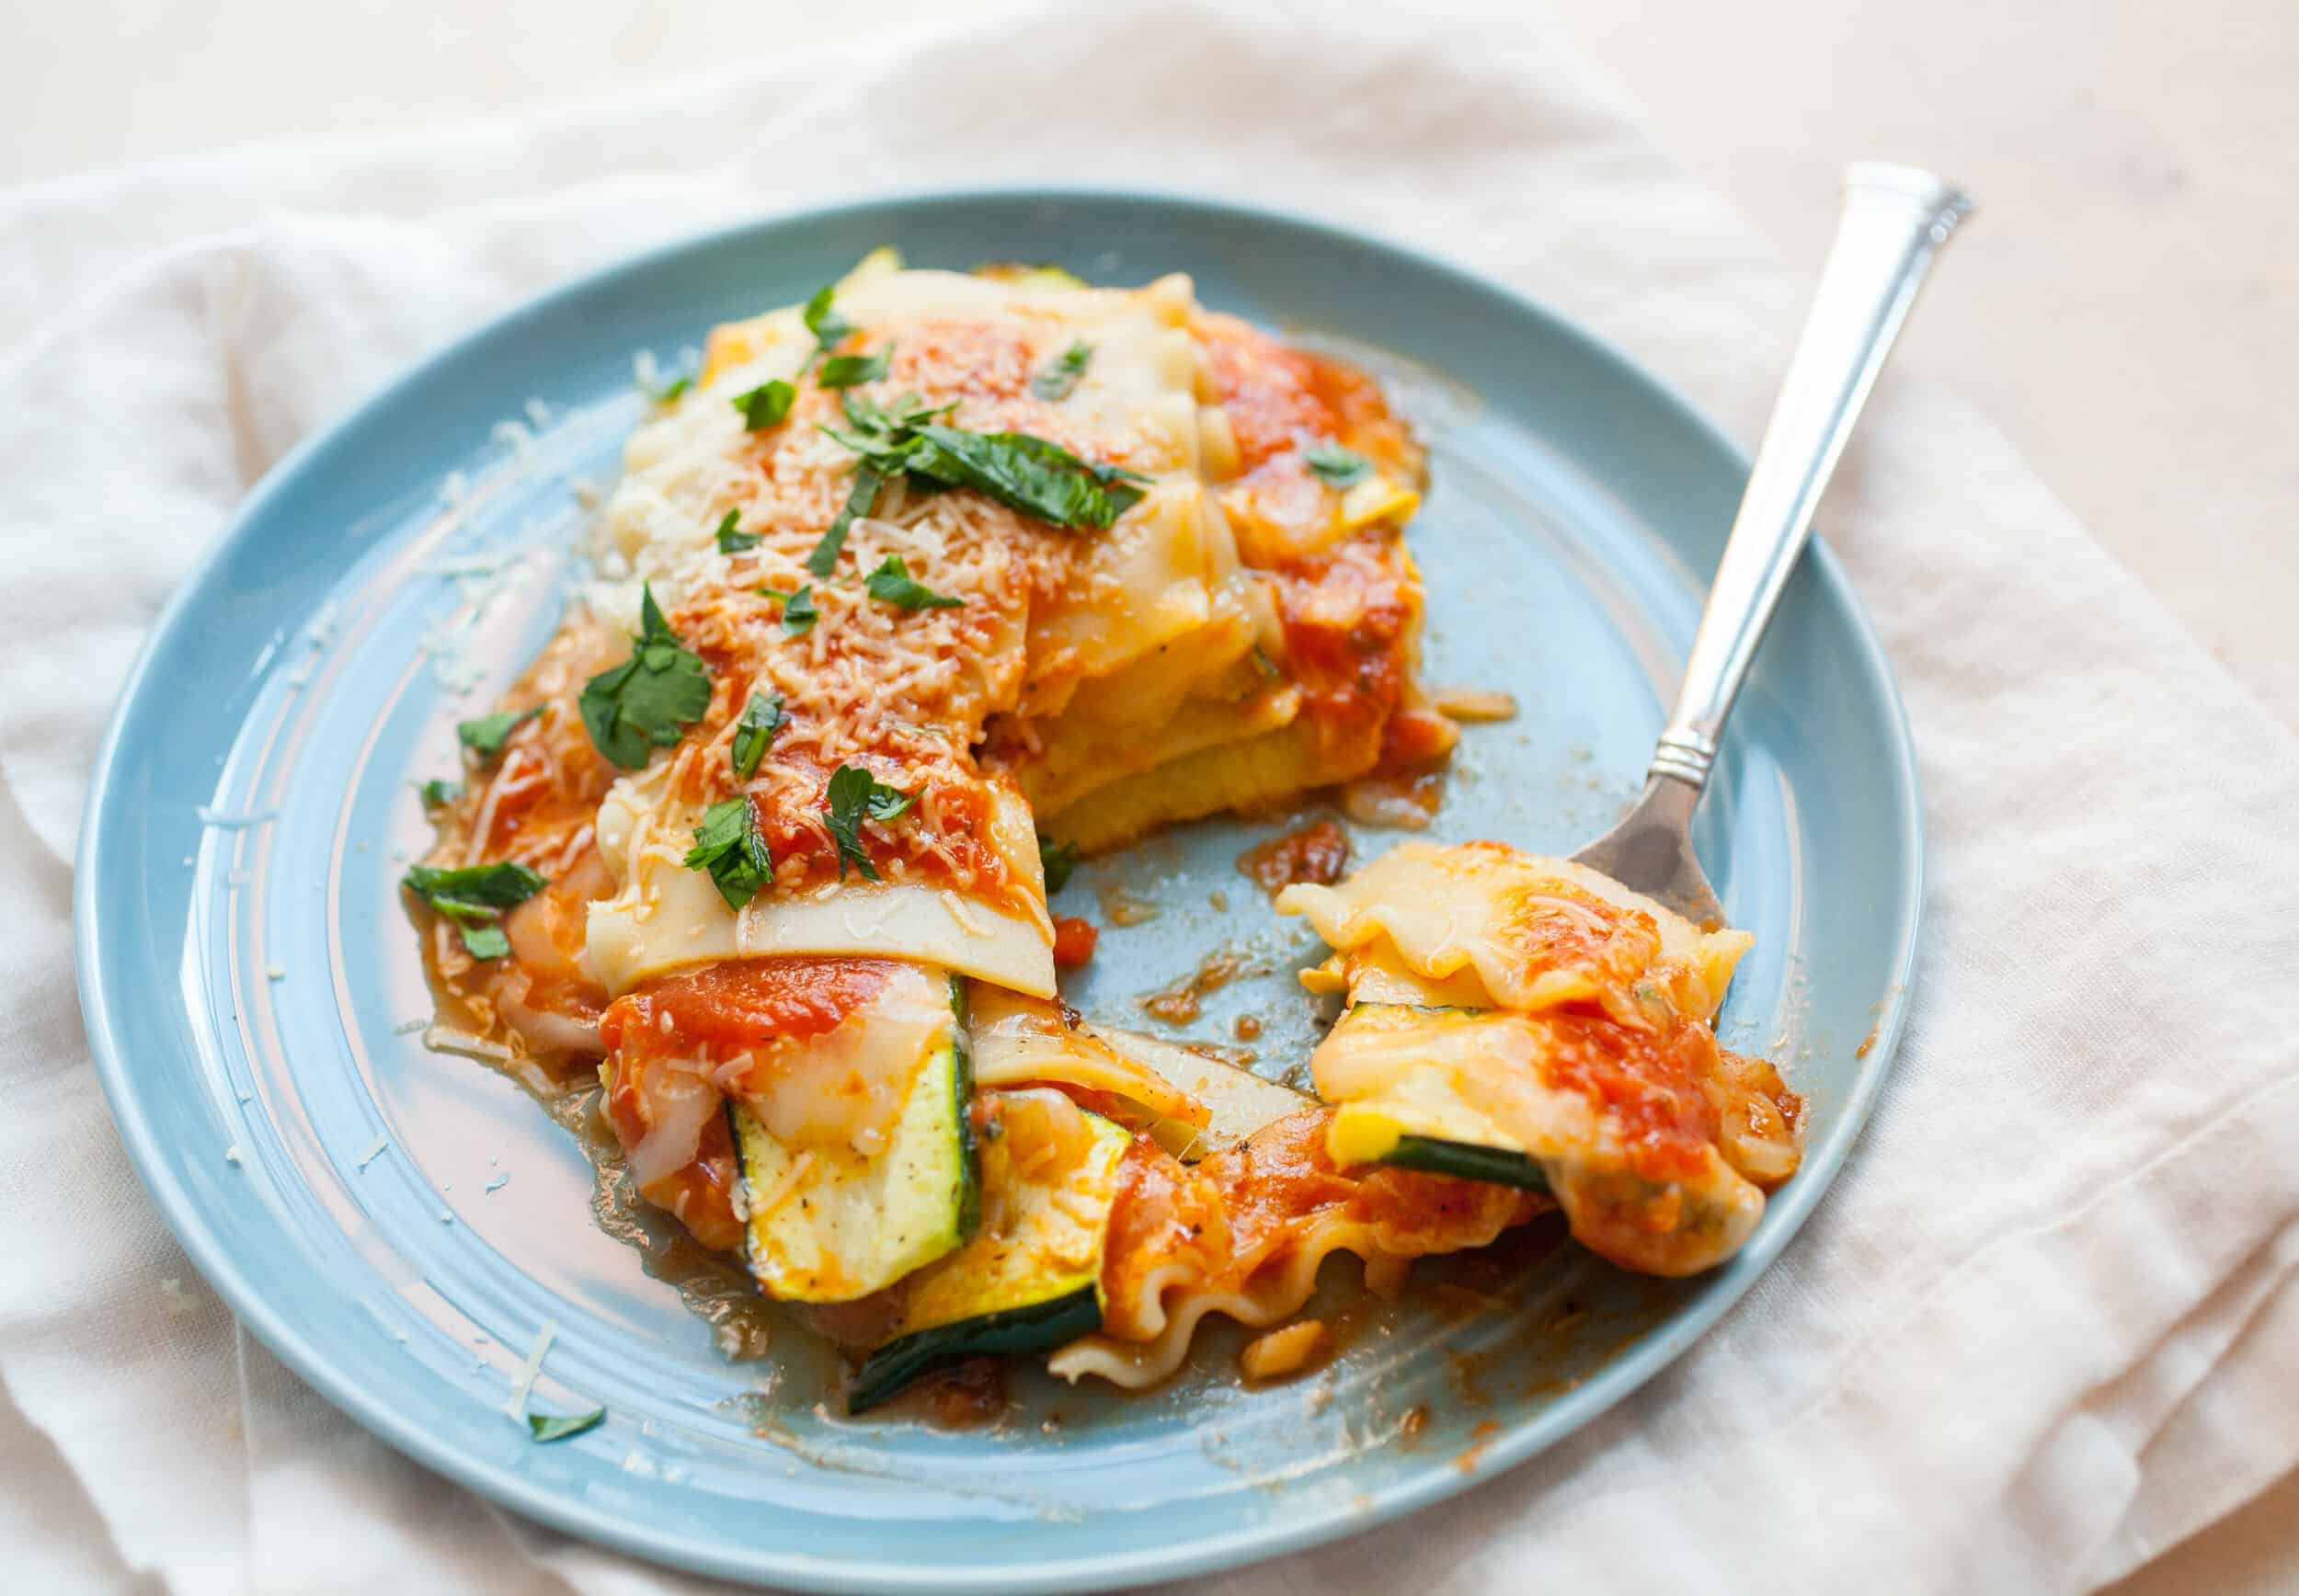 Freeform Veggie Lasagna Stack: If you have a few extra lasagna noodles around, this quick weeknight dinner is the perfect way to use them! | macheesmo.com